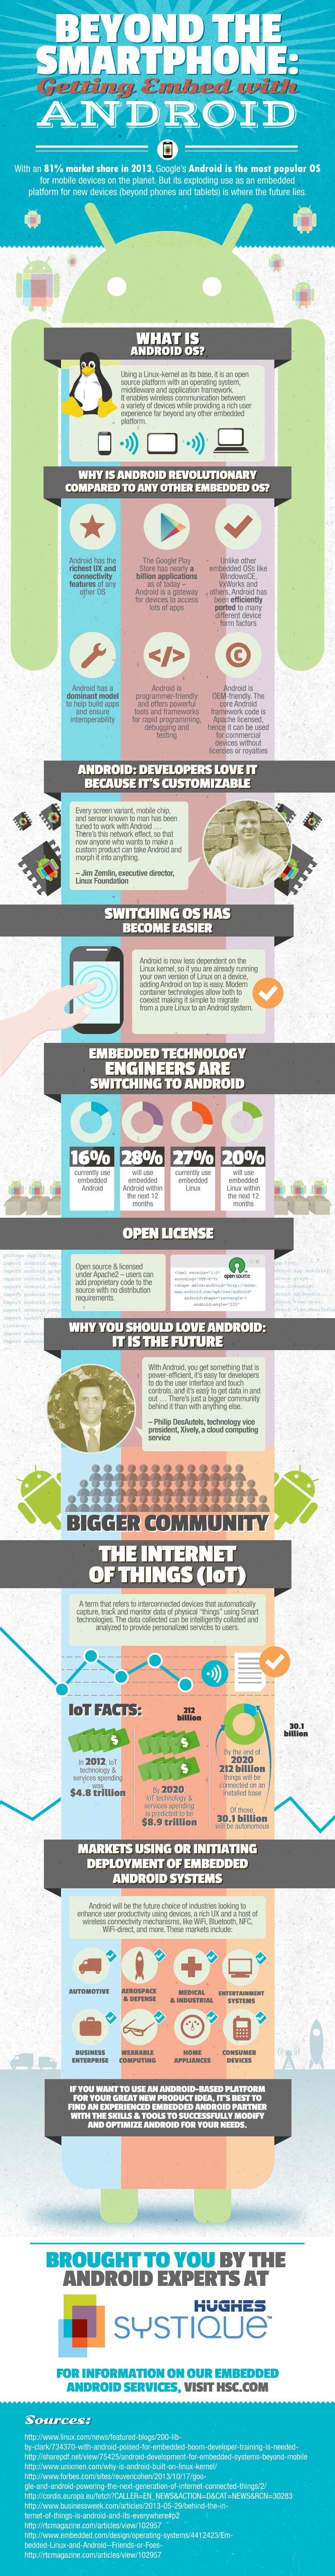 FINAL-Beyond-the-Smartphone-Infographic